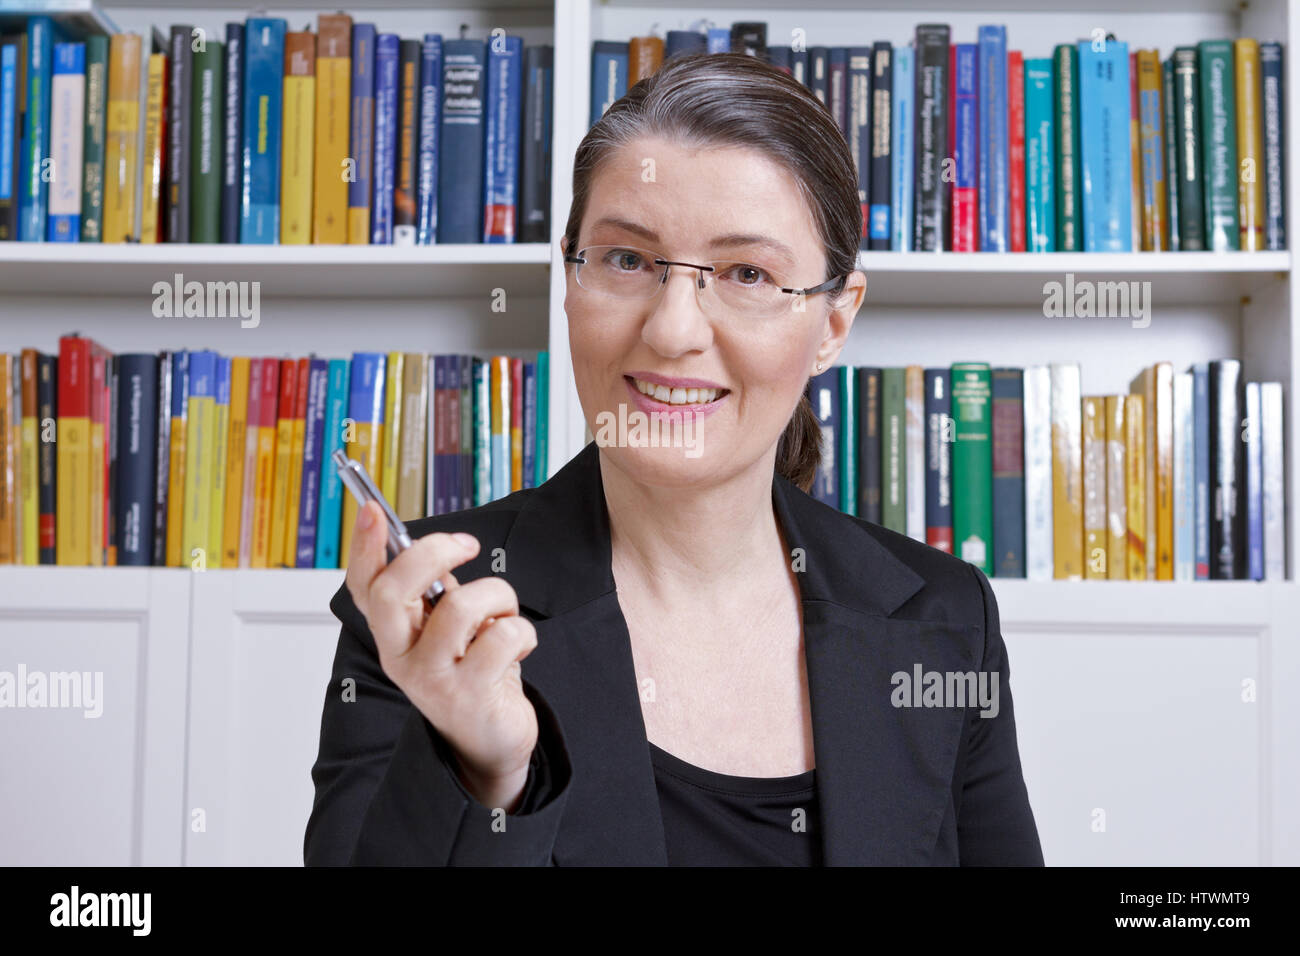 Friendly middle aged woman with black blazer in an office with lots of books explaining something during a lesson, - Stock Image